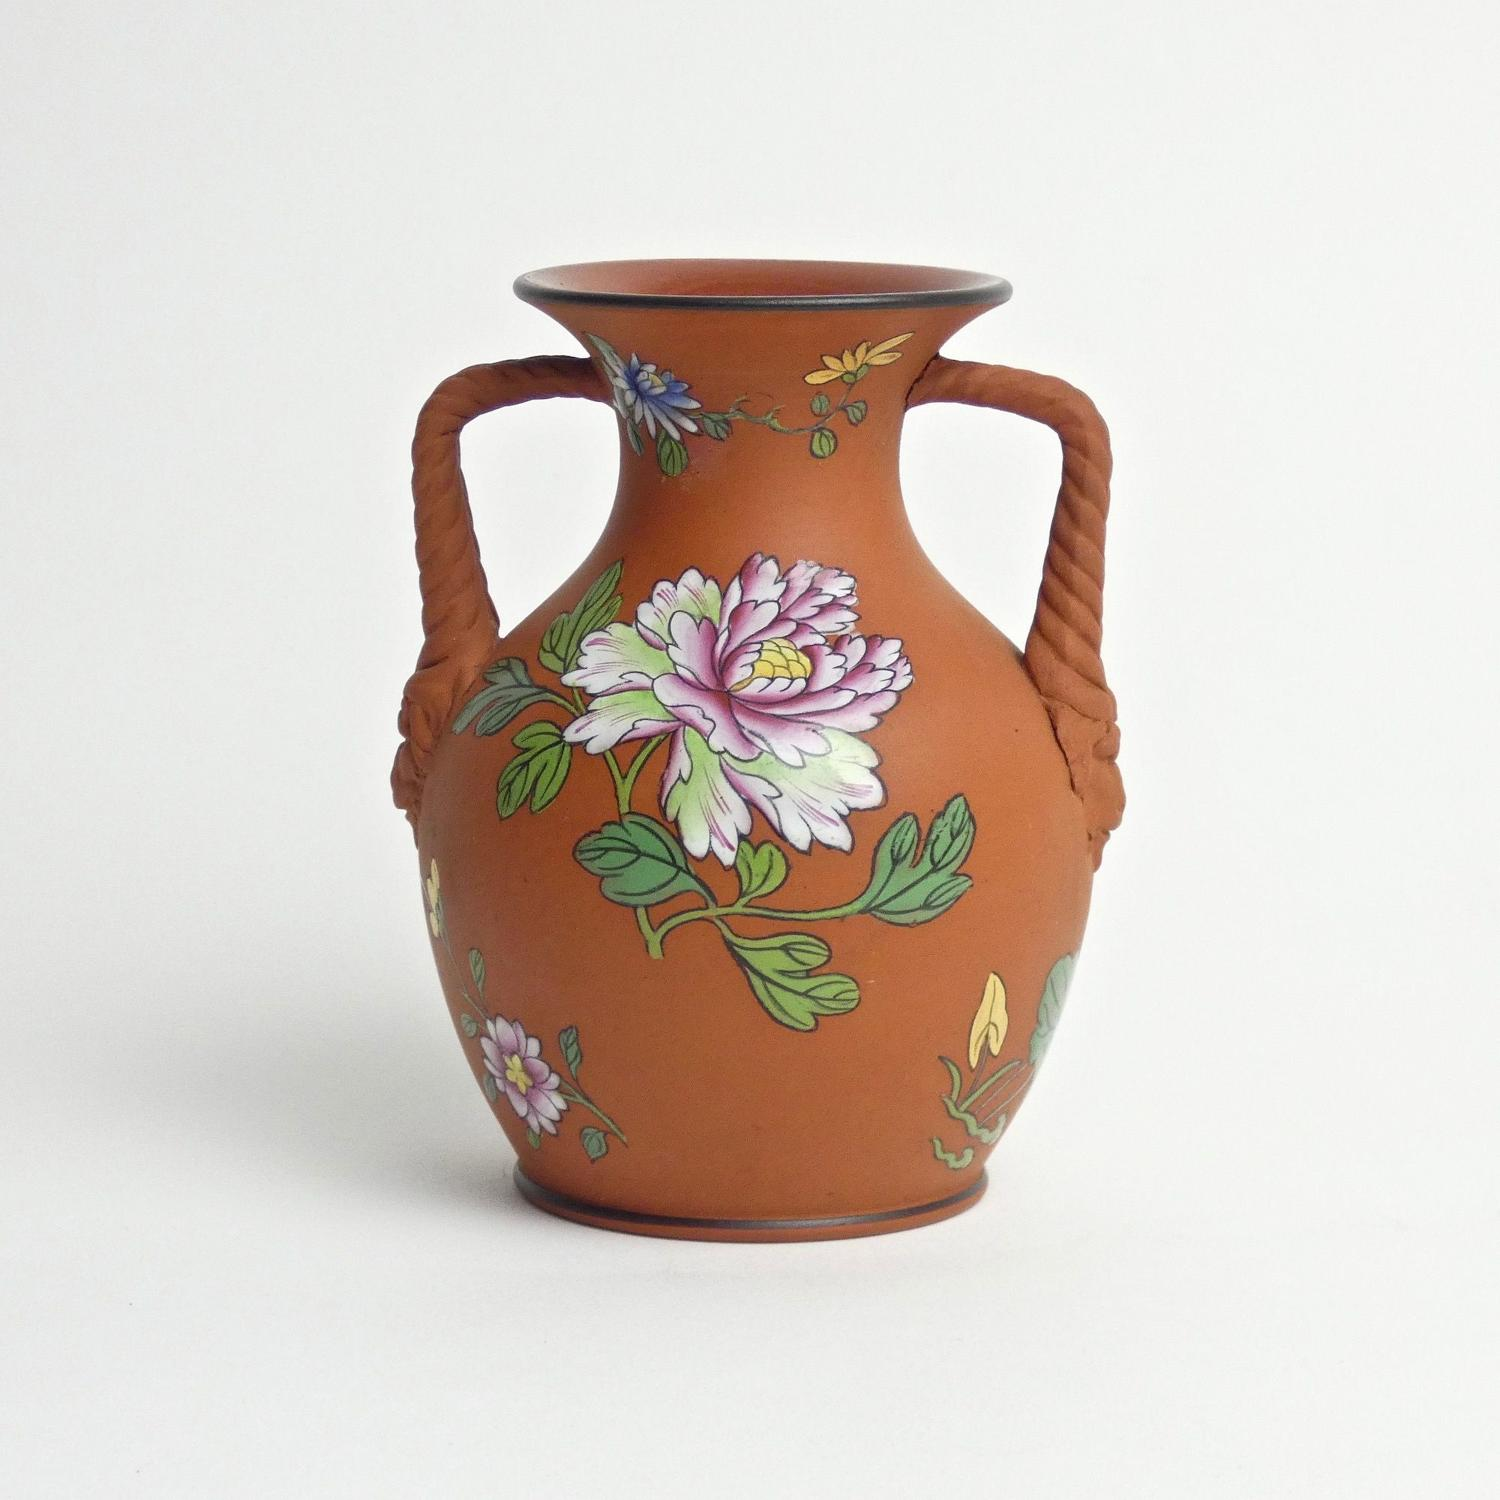 Wedgwood Capriware on terracotta vase